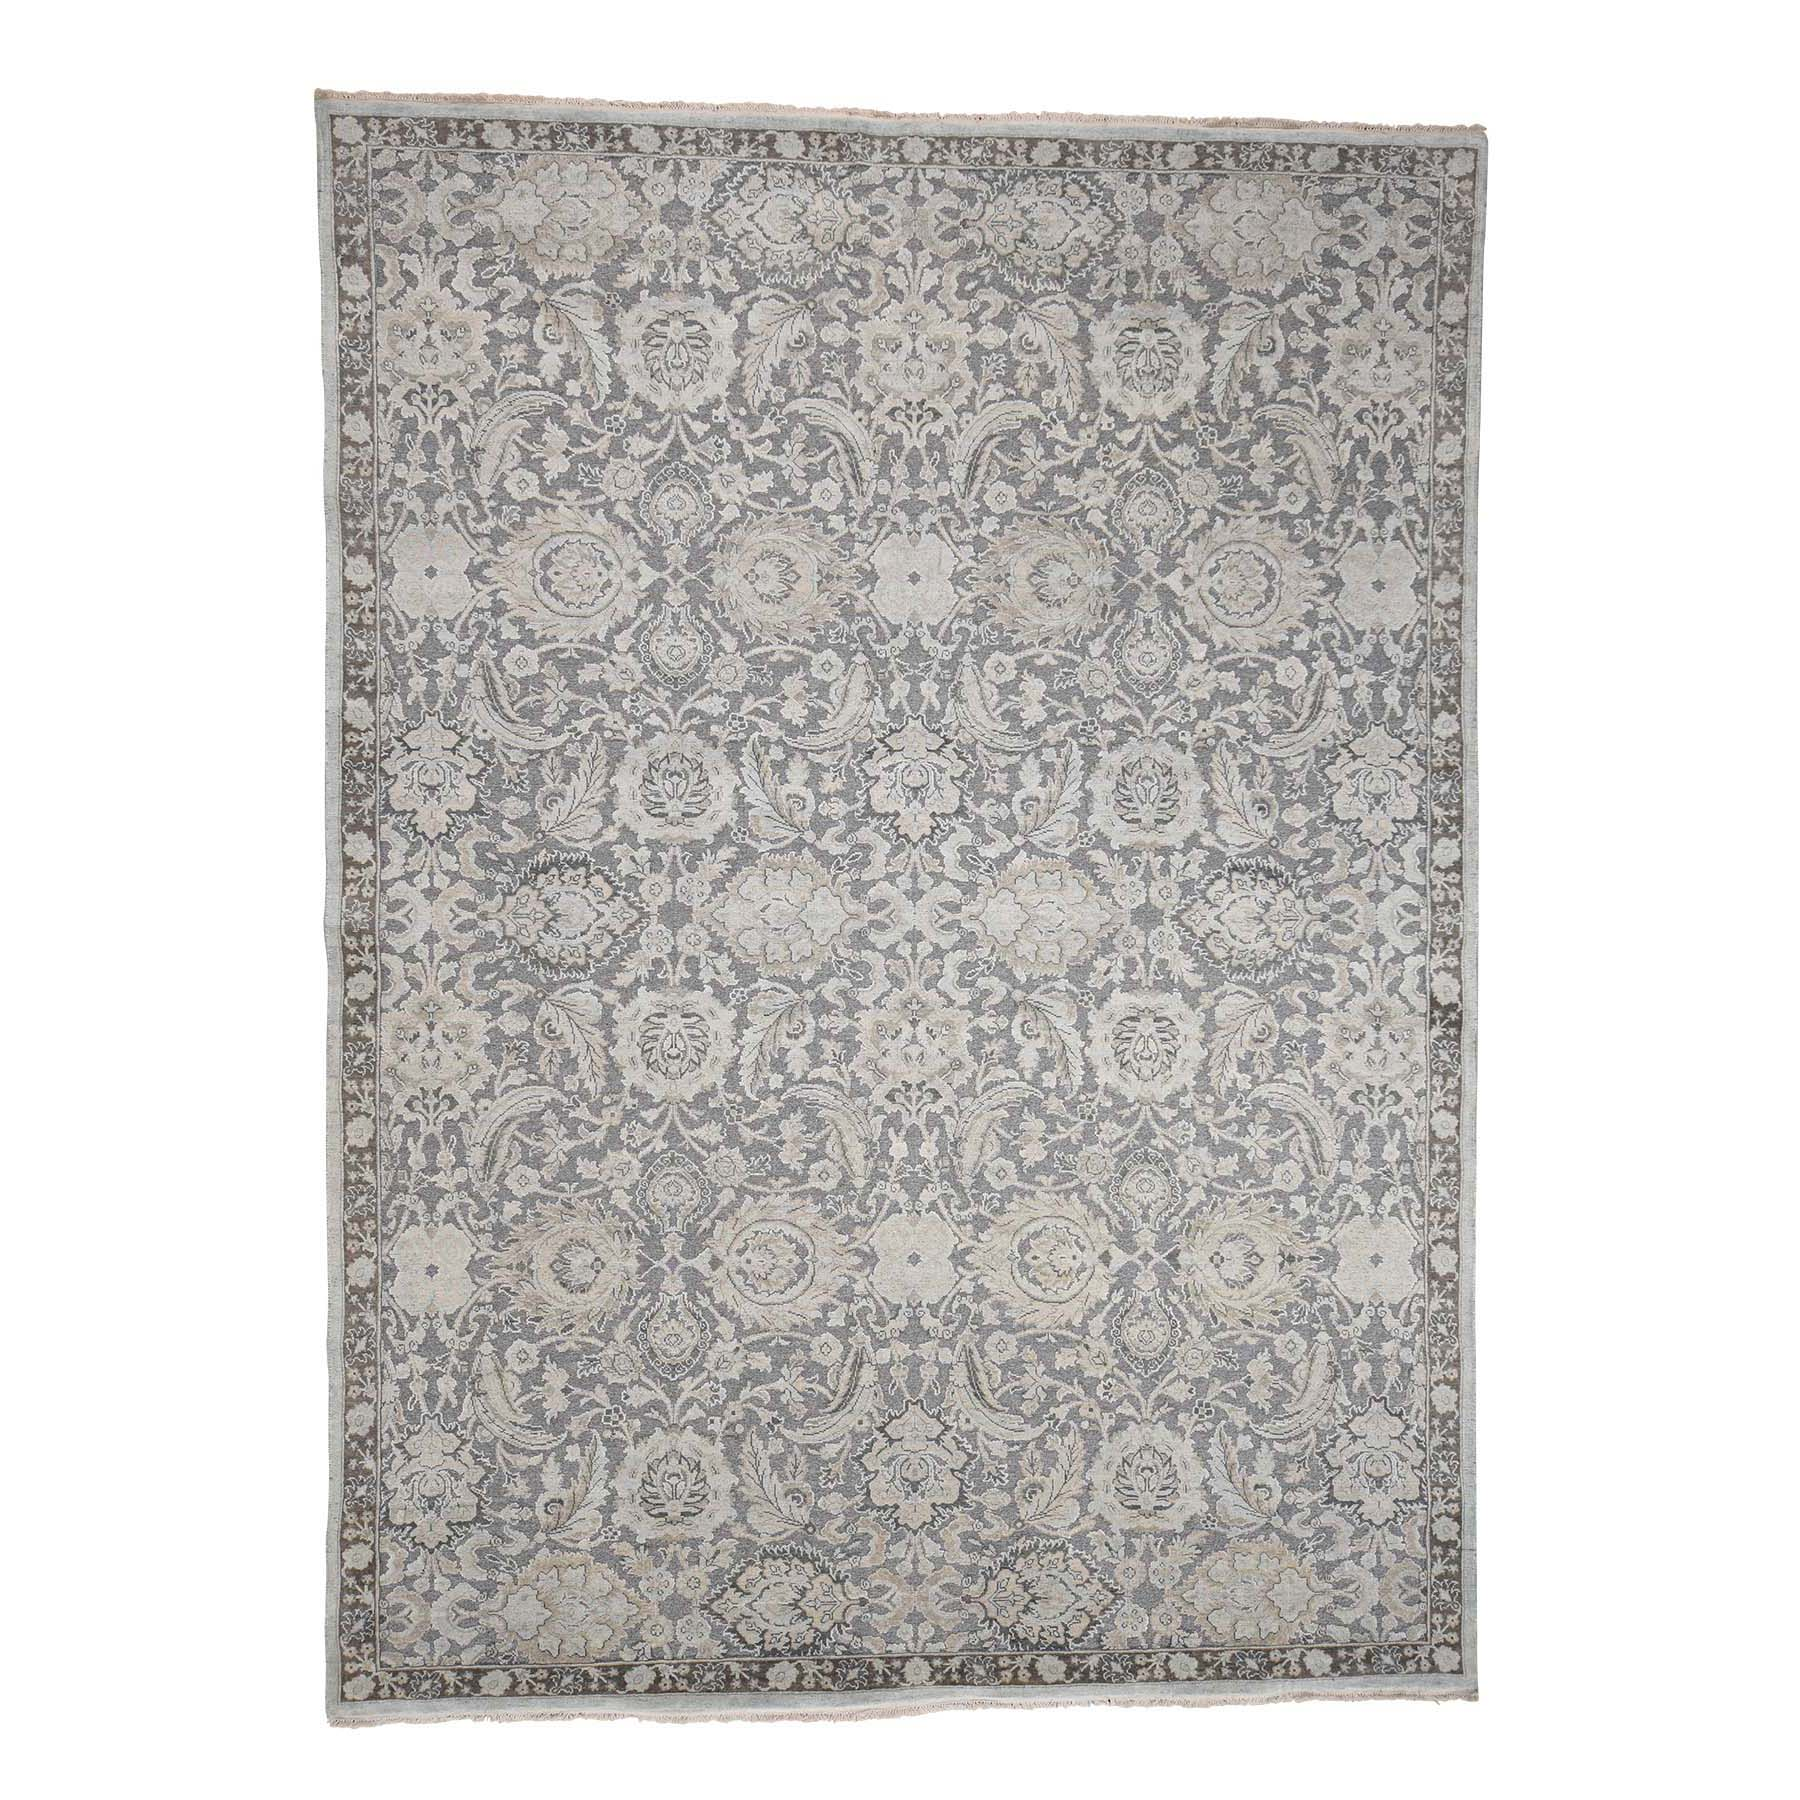 "9'1""x12'5"" Hand-Knotted Flat Weave with Raised Silk Oriental Rug"